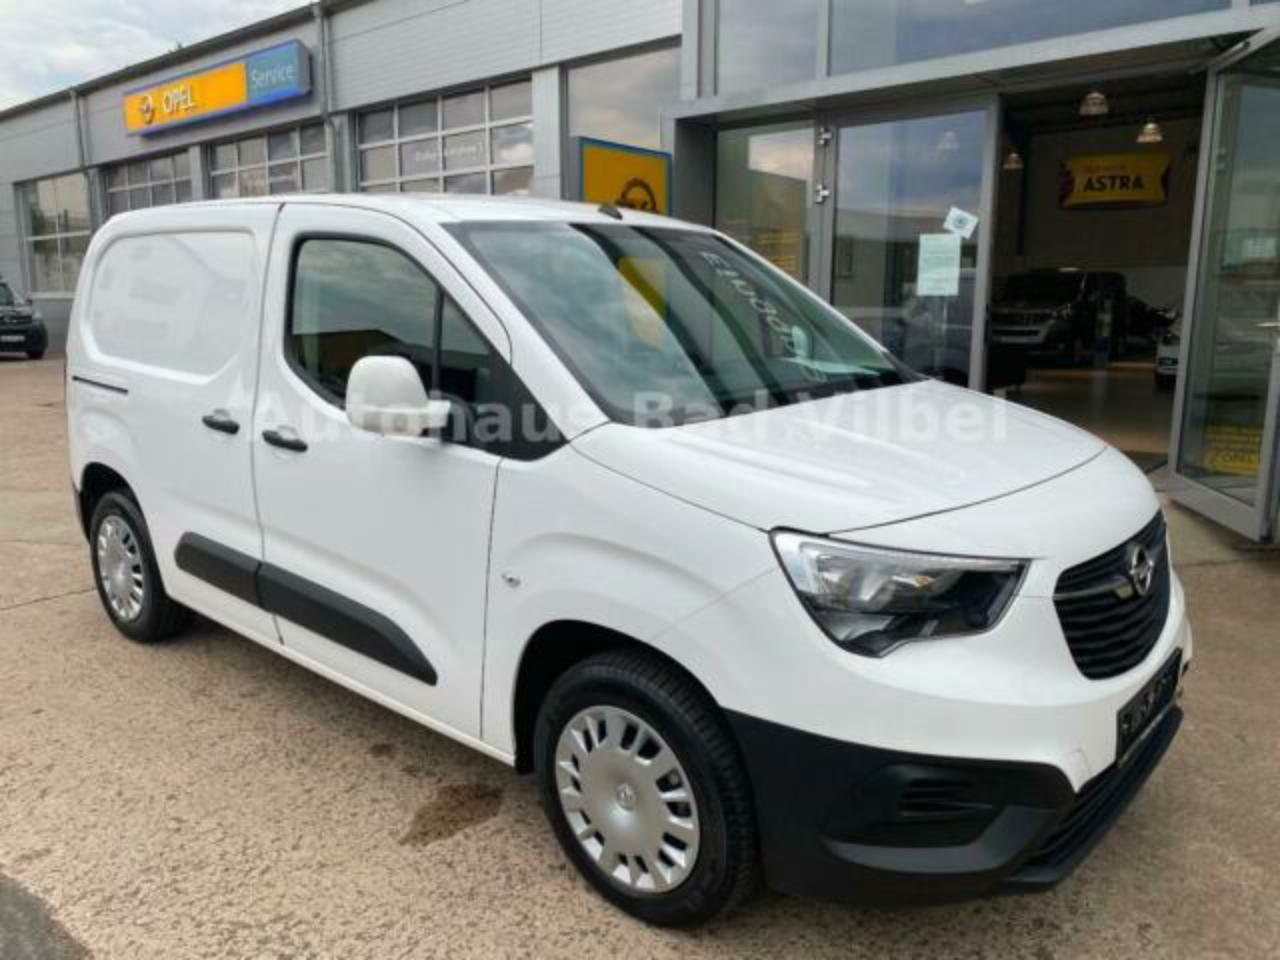 Opel Combo CARGO /Mobiler Kuhlcontainer on Bord